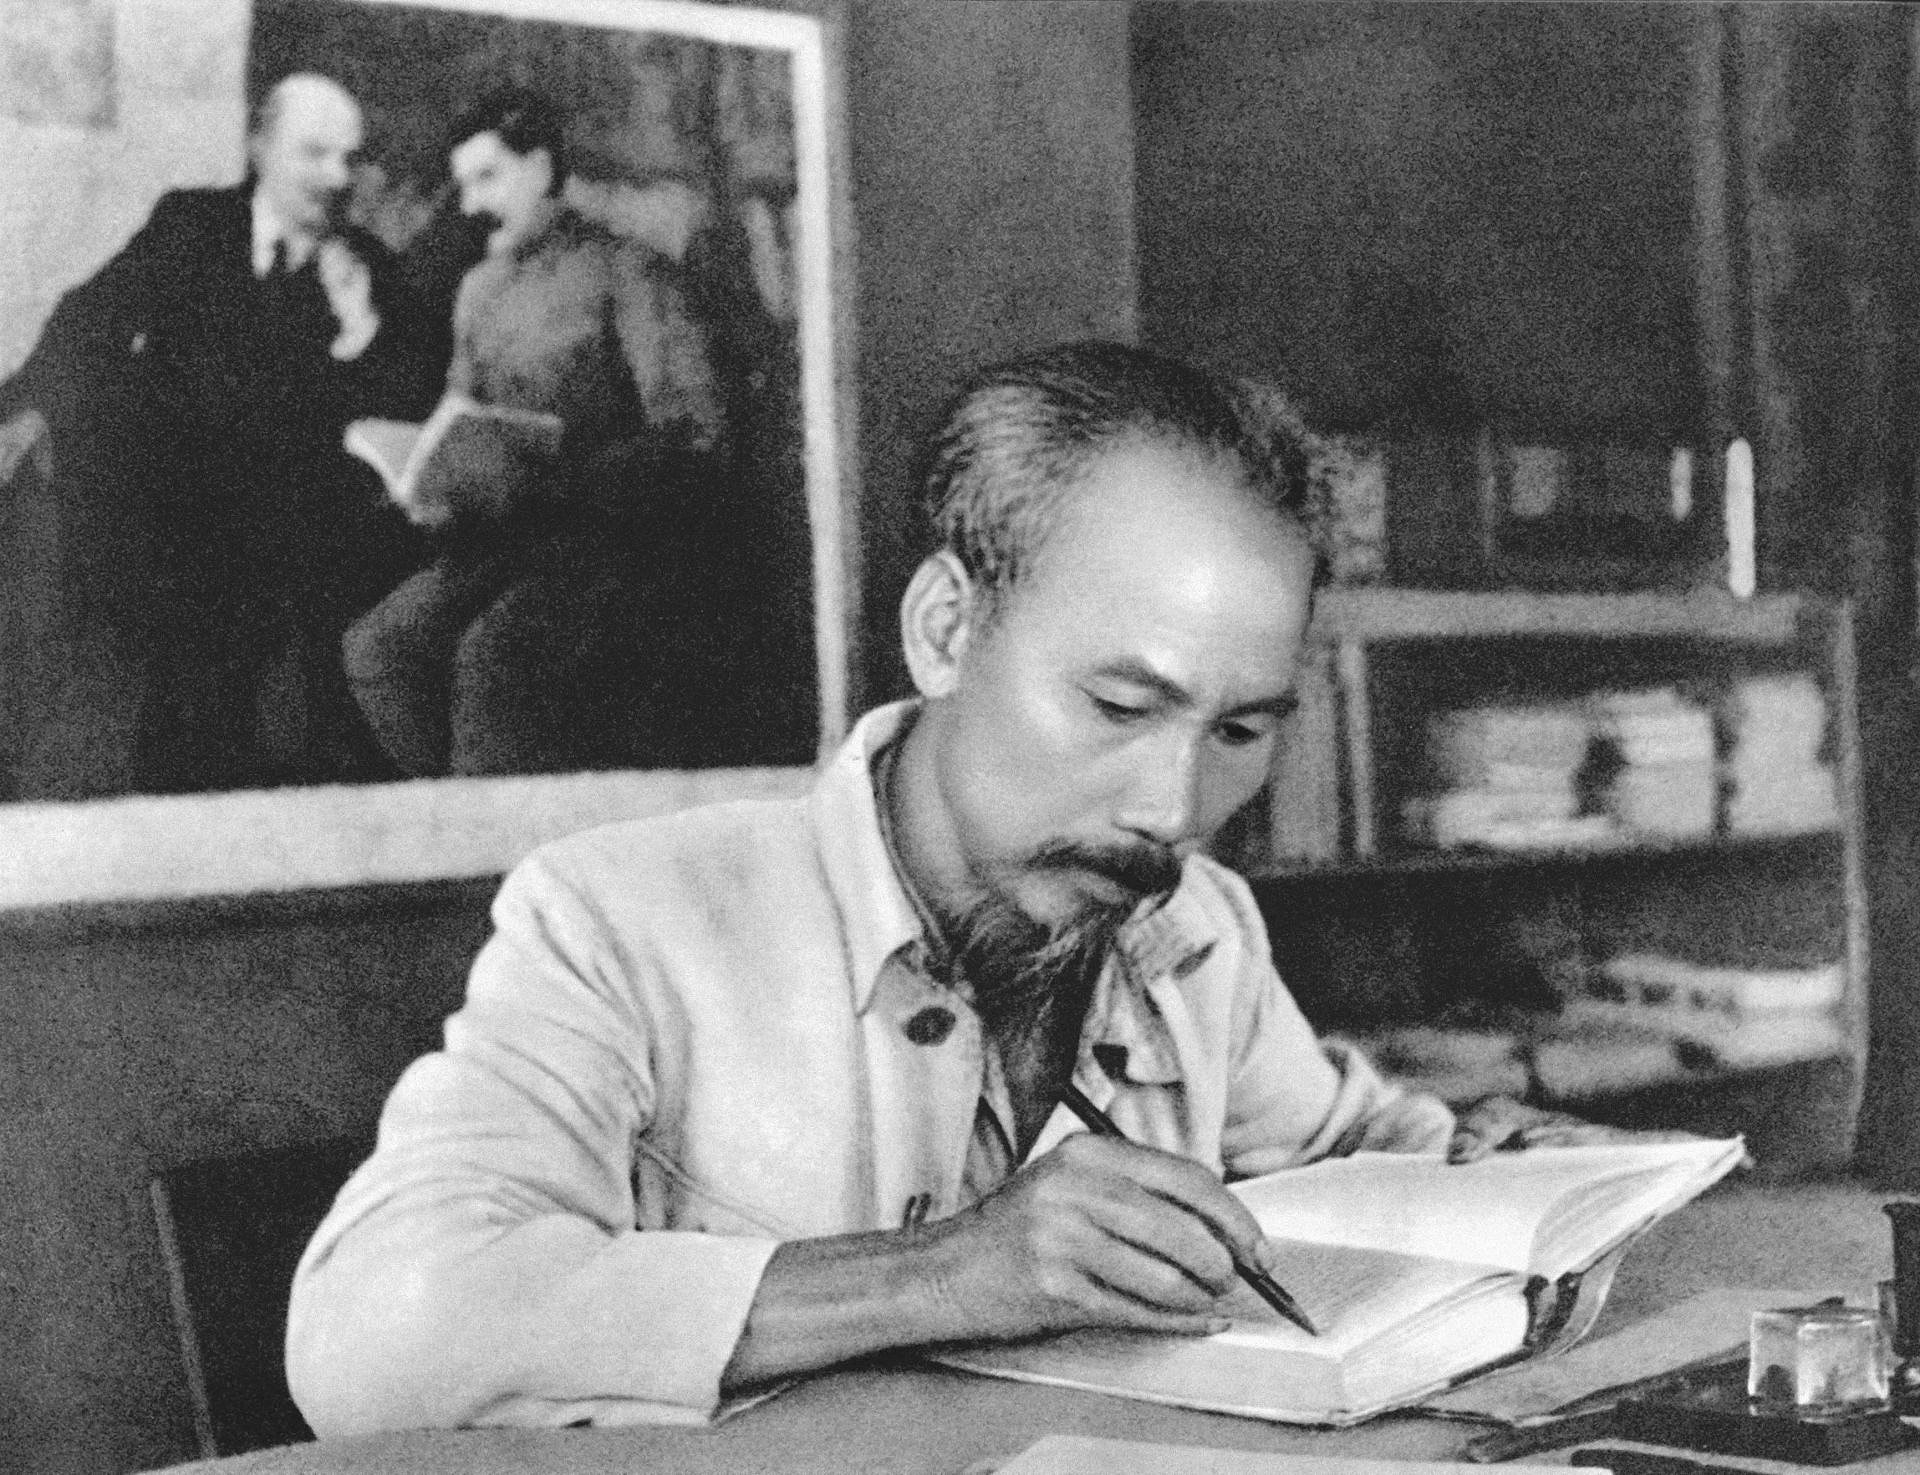 Exhibition on President Ho Chi Minh opens at former revolutionary base hinh anh 2